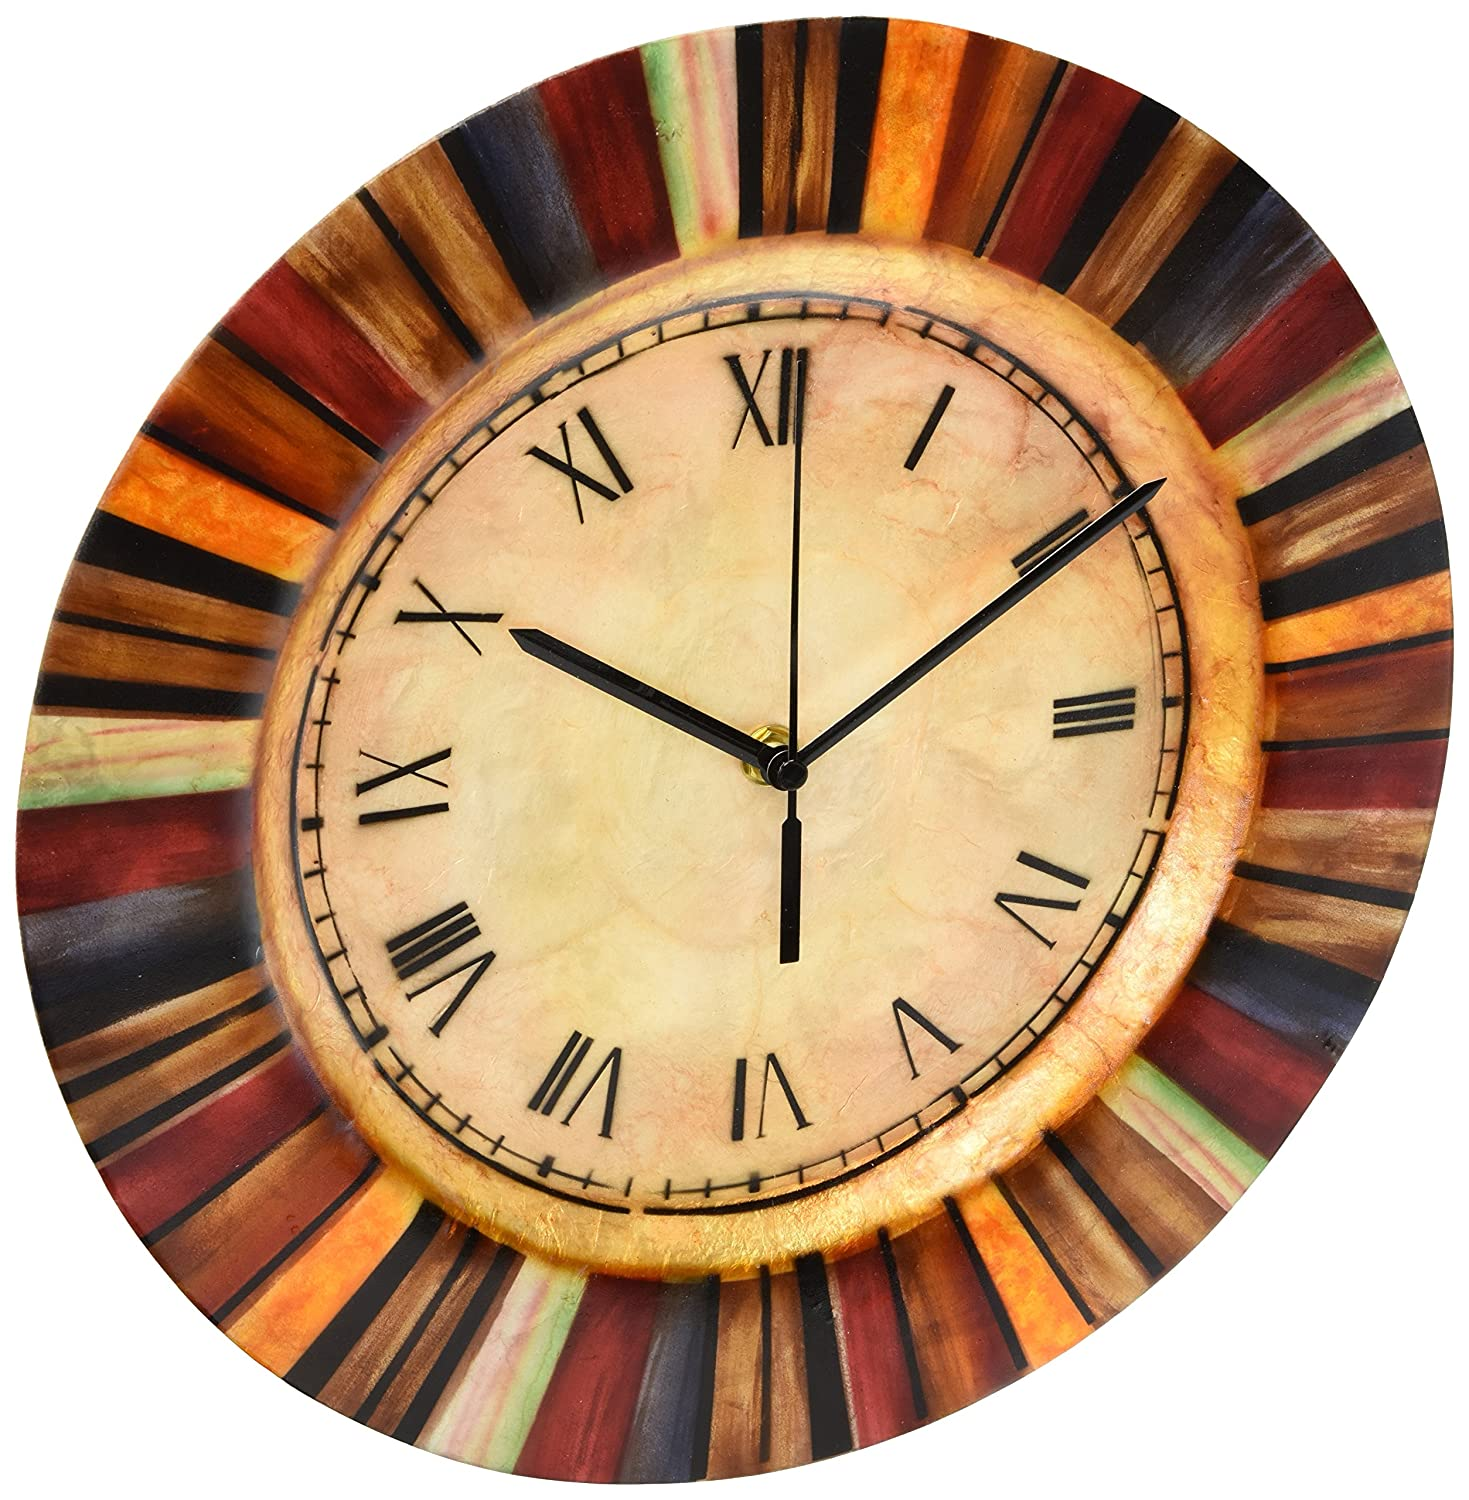 Amazon.com: Mother of Pearl Wall Clock: Home & Kitchen